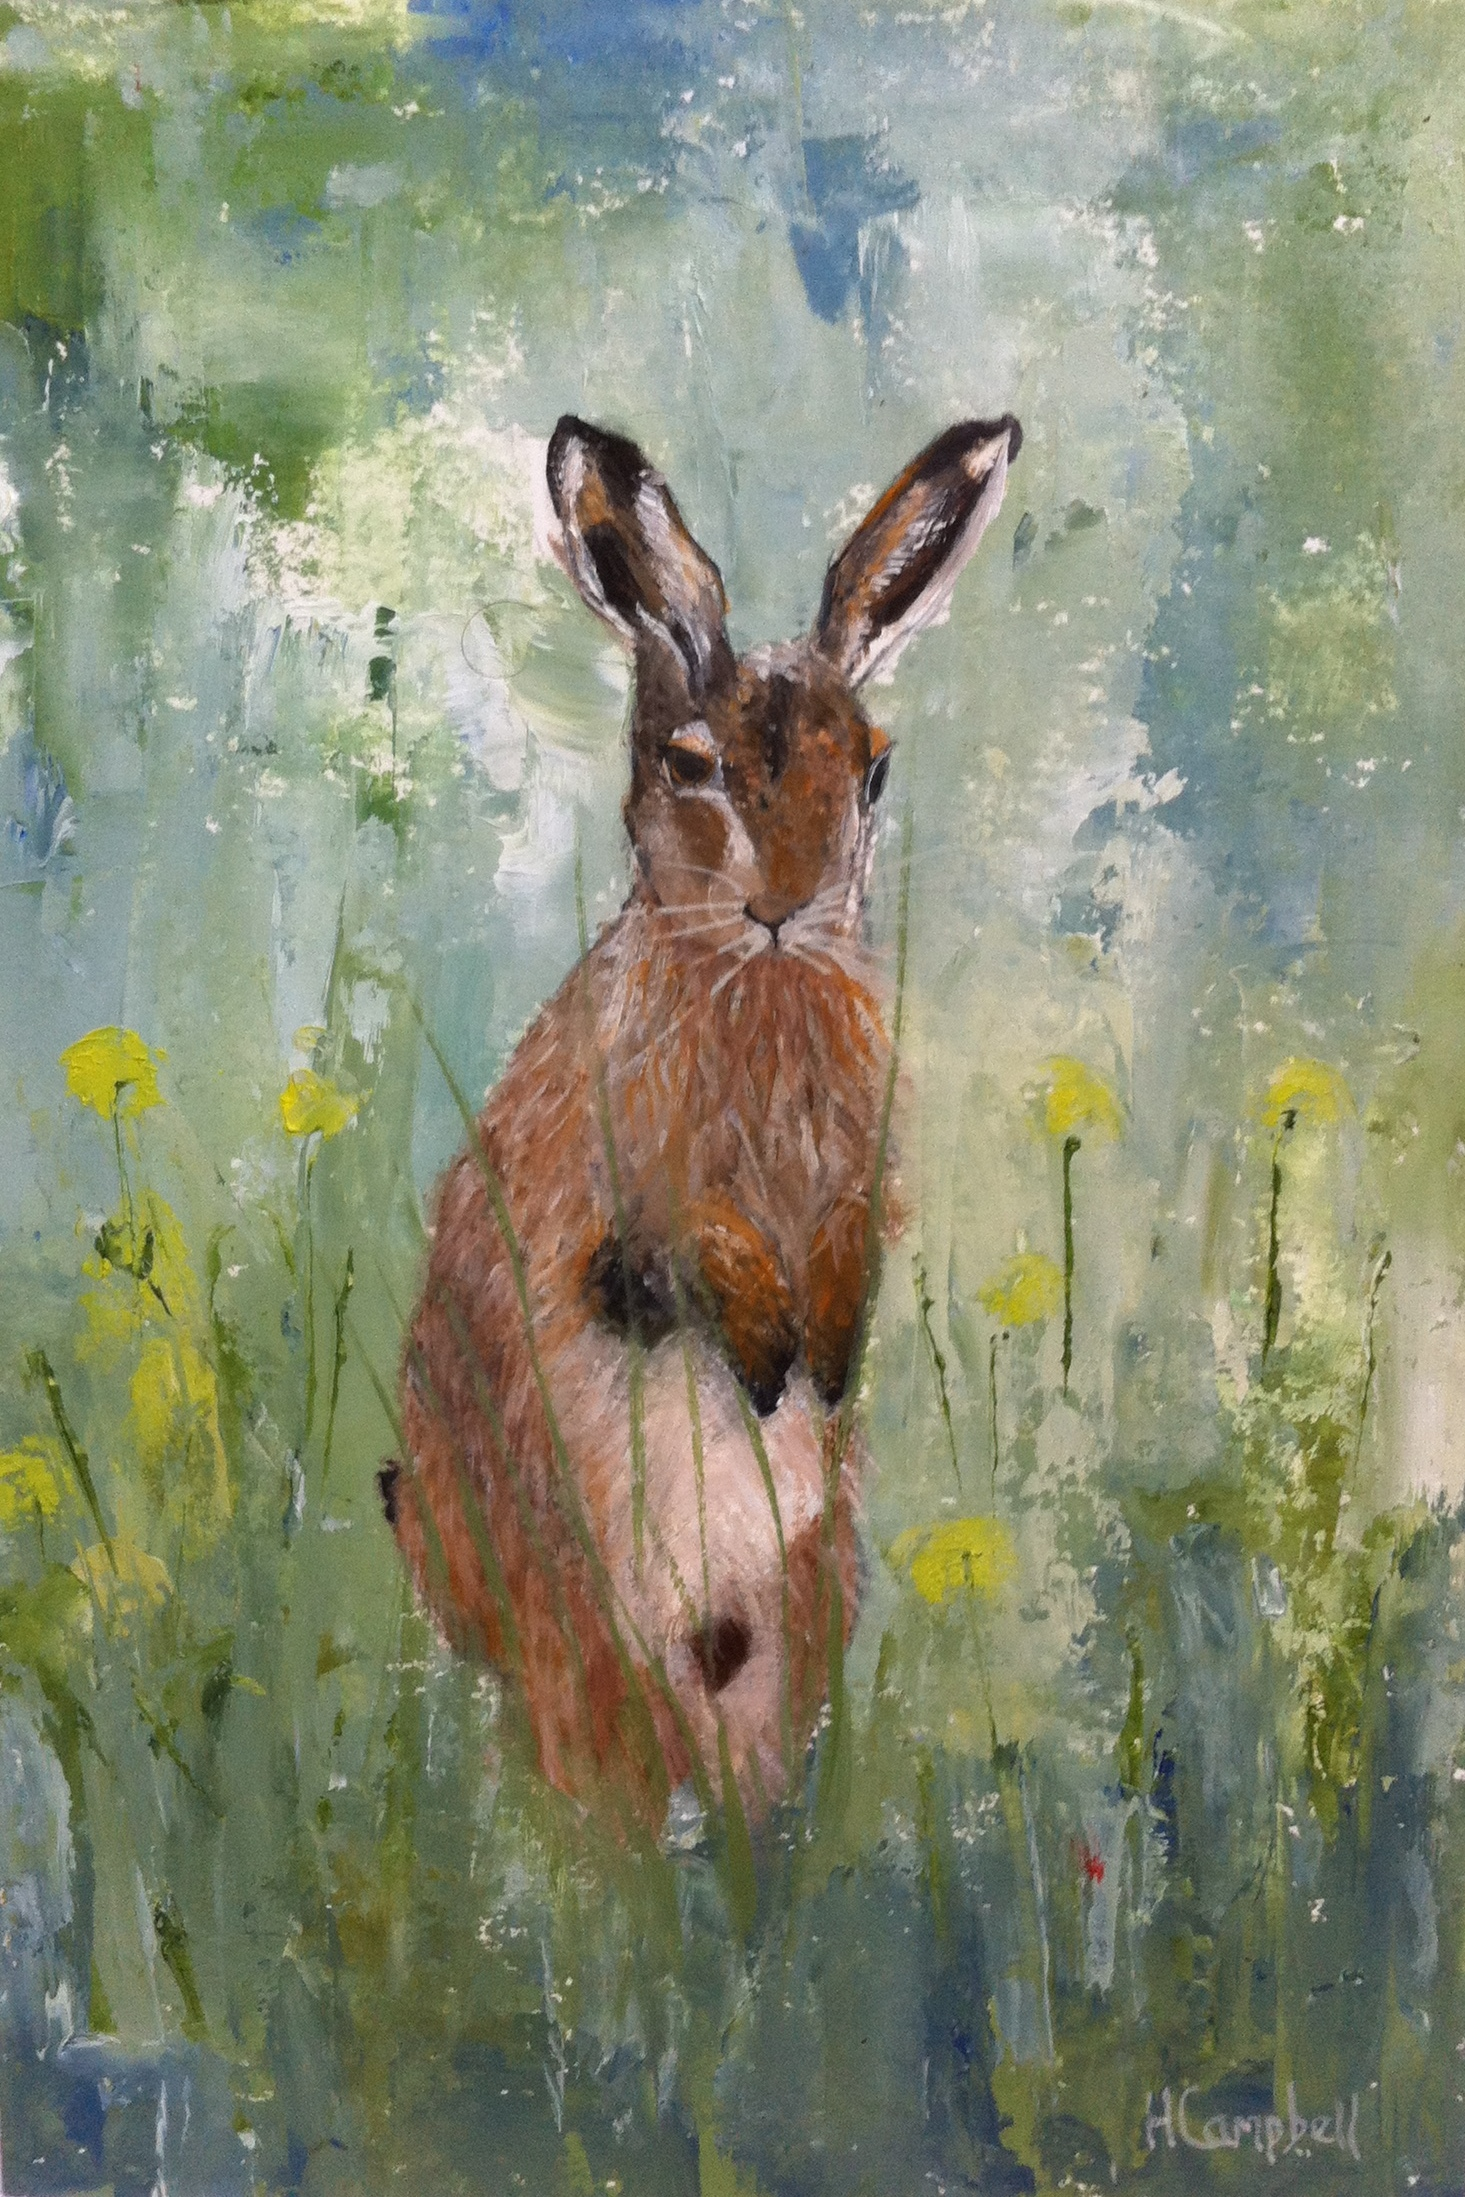 Hare among the wild flowers